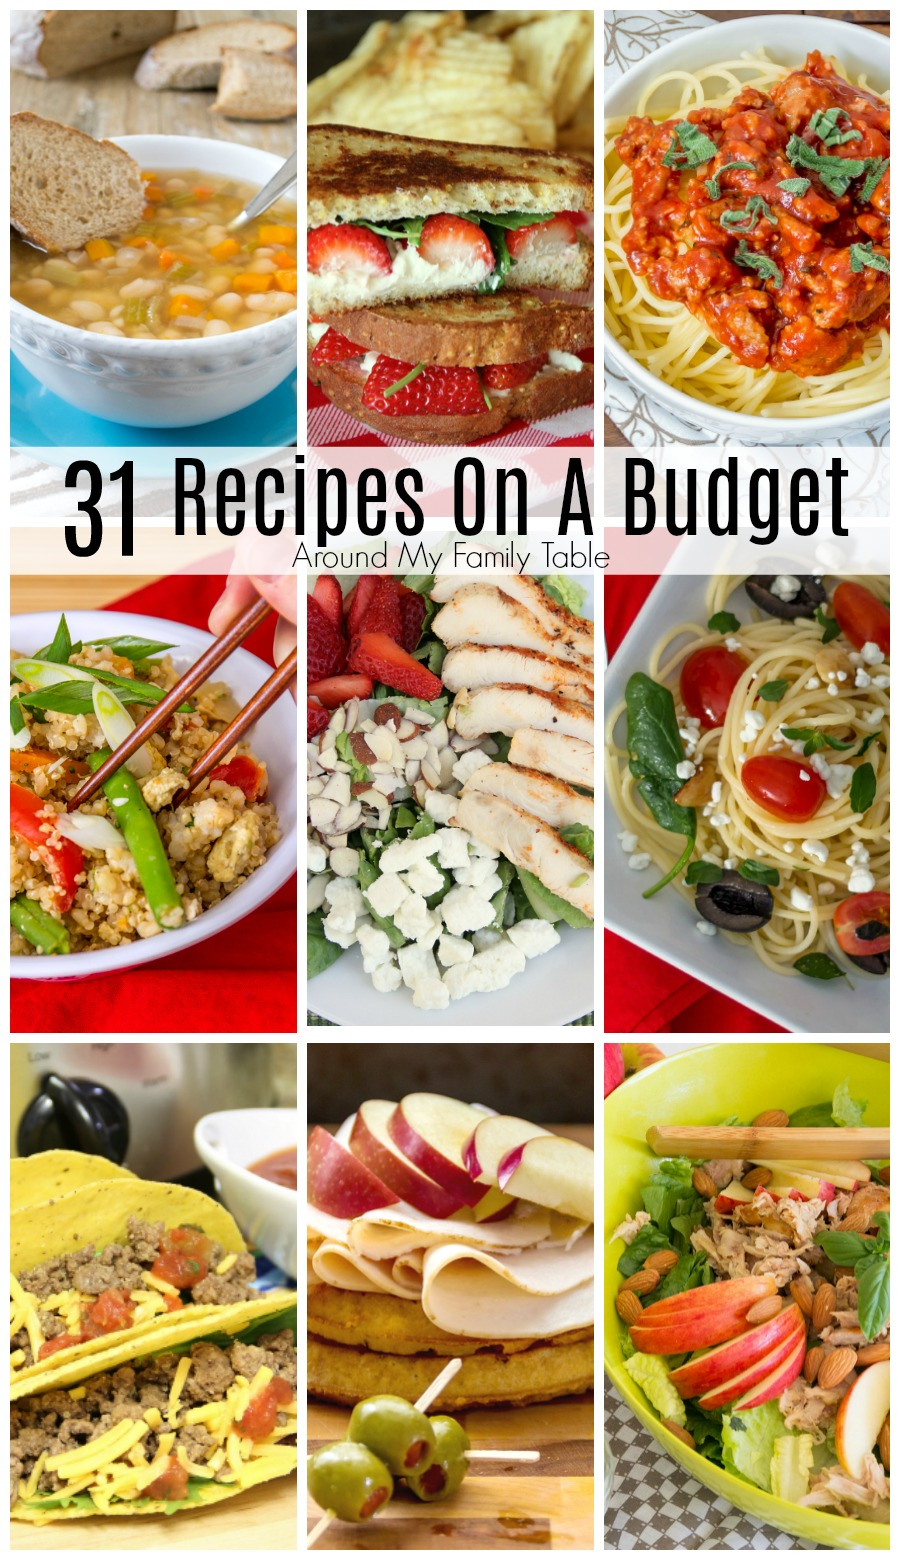 Recipes On A Budget Around My Family Table